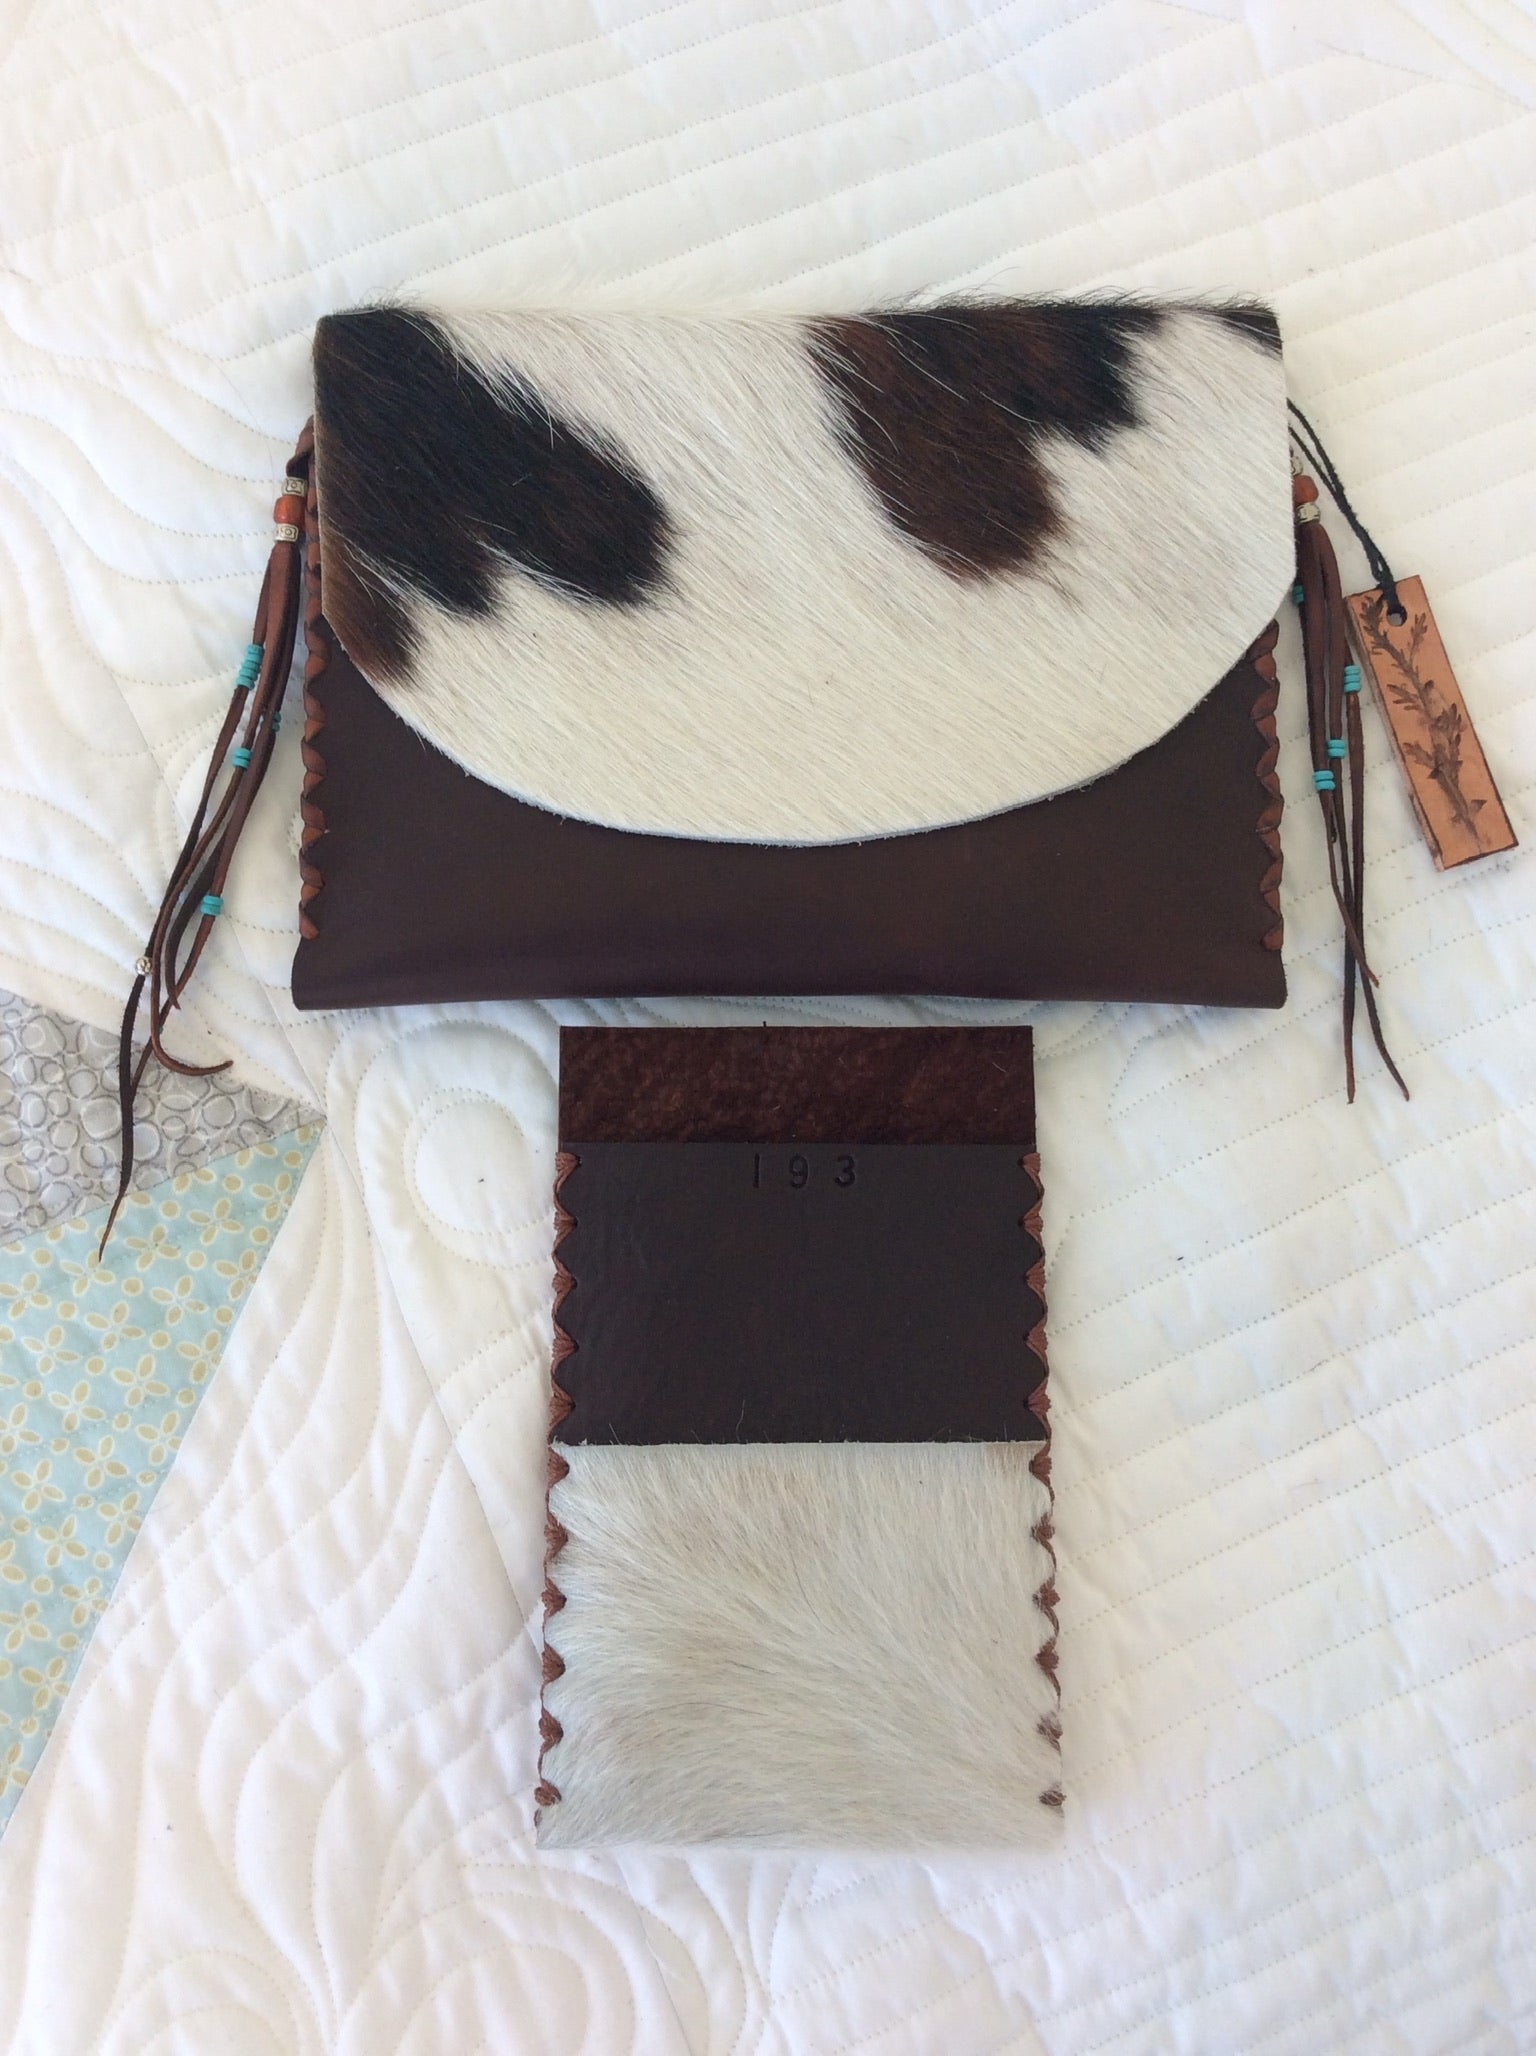 #193 Brown leather w/HOH flap and cell phone holder